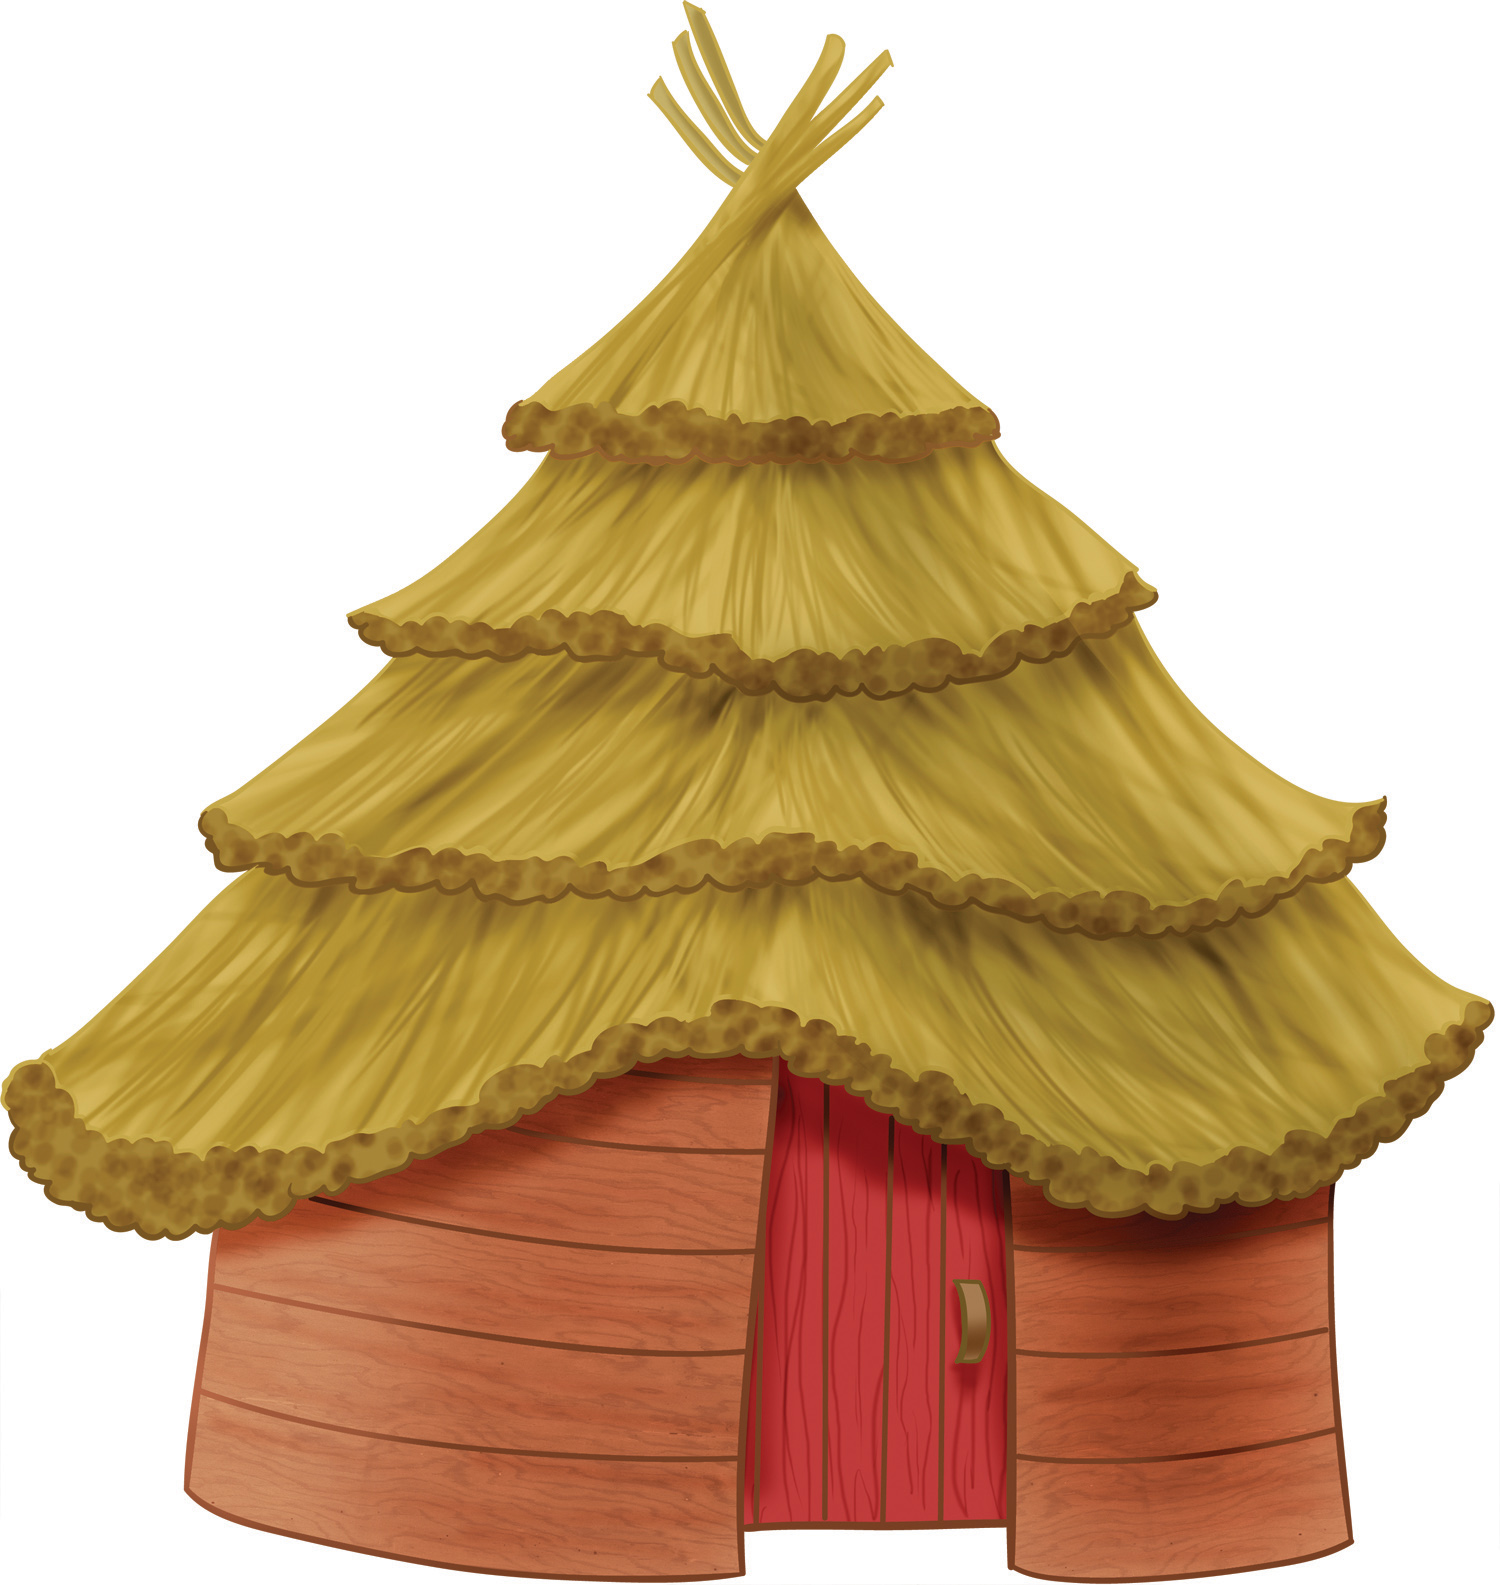 Tiki hut clipart free jpg library stock Free Tiki Hut Cliparts, Download Free Clip Art, Free Clip ... jpg library stock